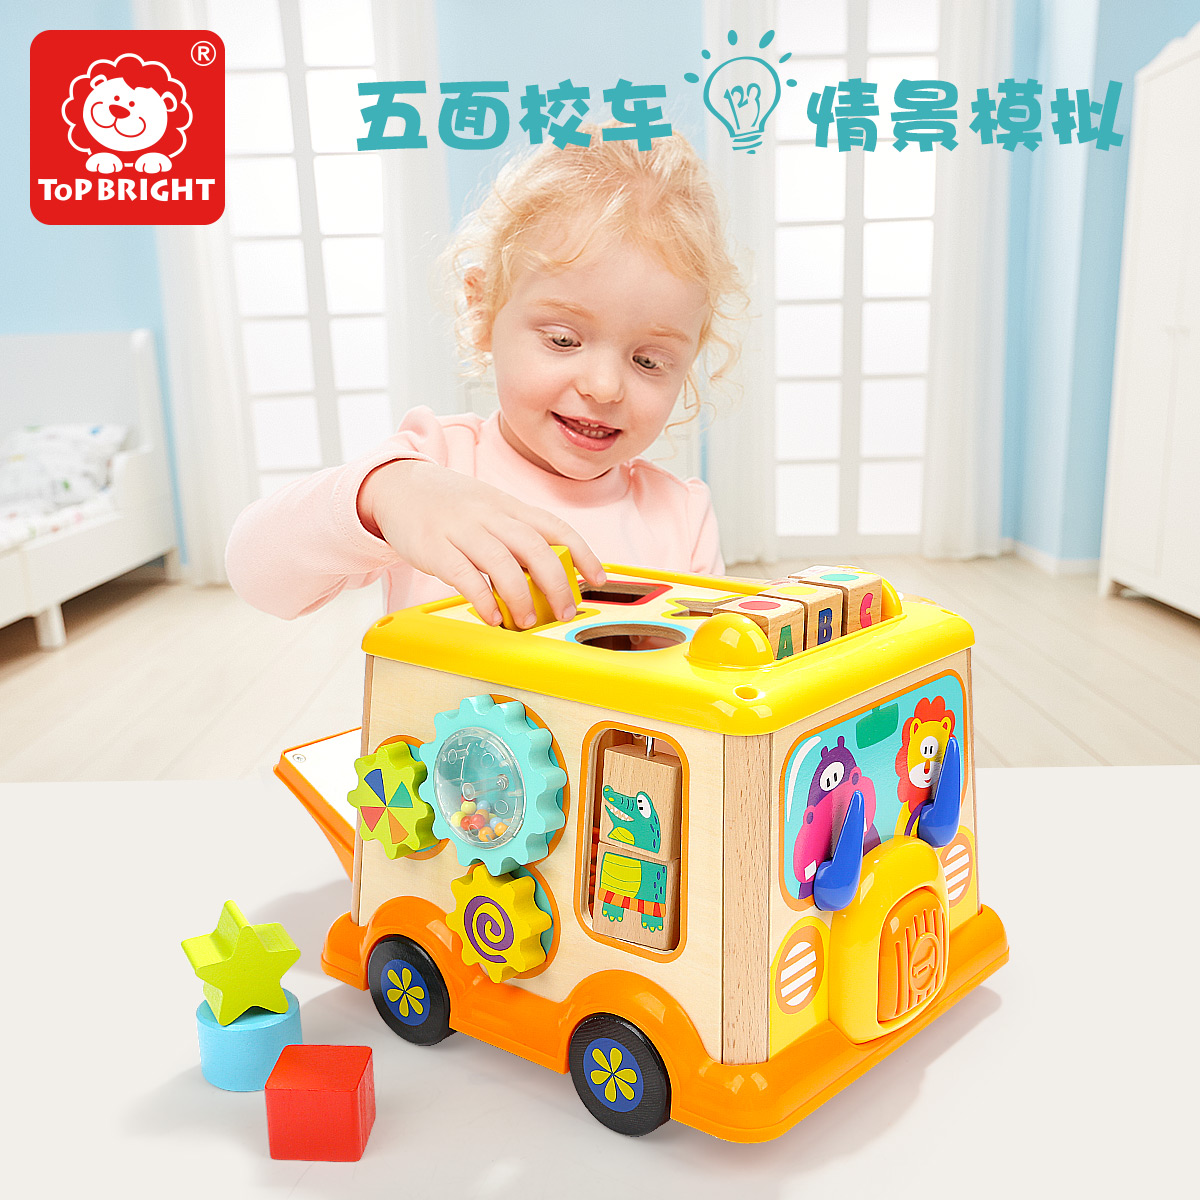 Tebor Multifunctional School Bus Shape Matching Baby Early Education Toys One and a half Years Old Baby Toy Girls Two Years Old